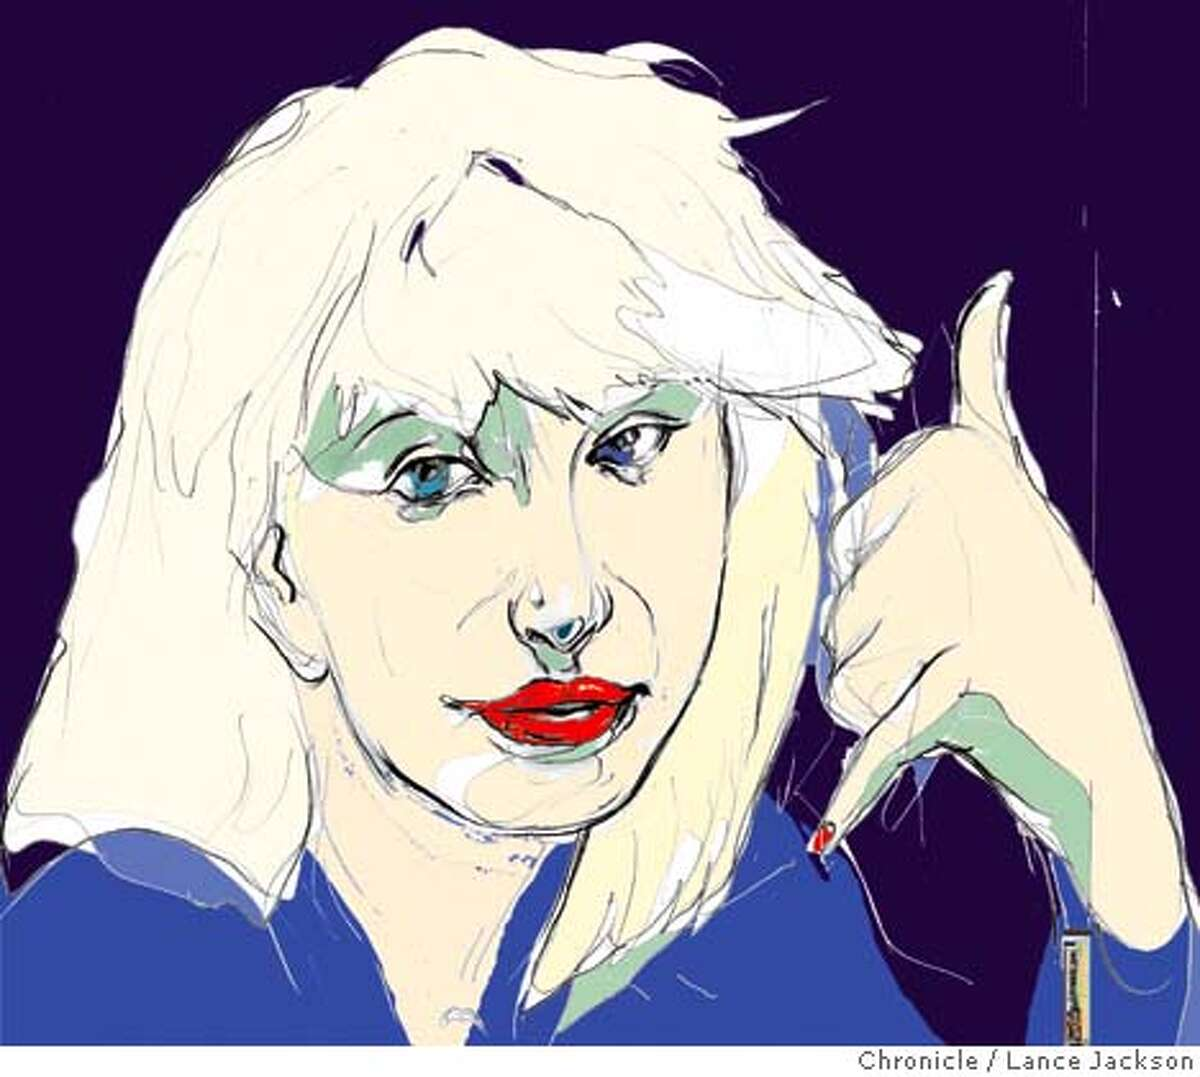 llustration By Lance Jackson Datebook 2nd of three sketch protraits of Courtney Love